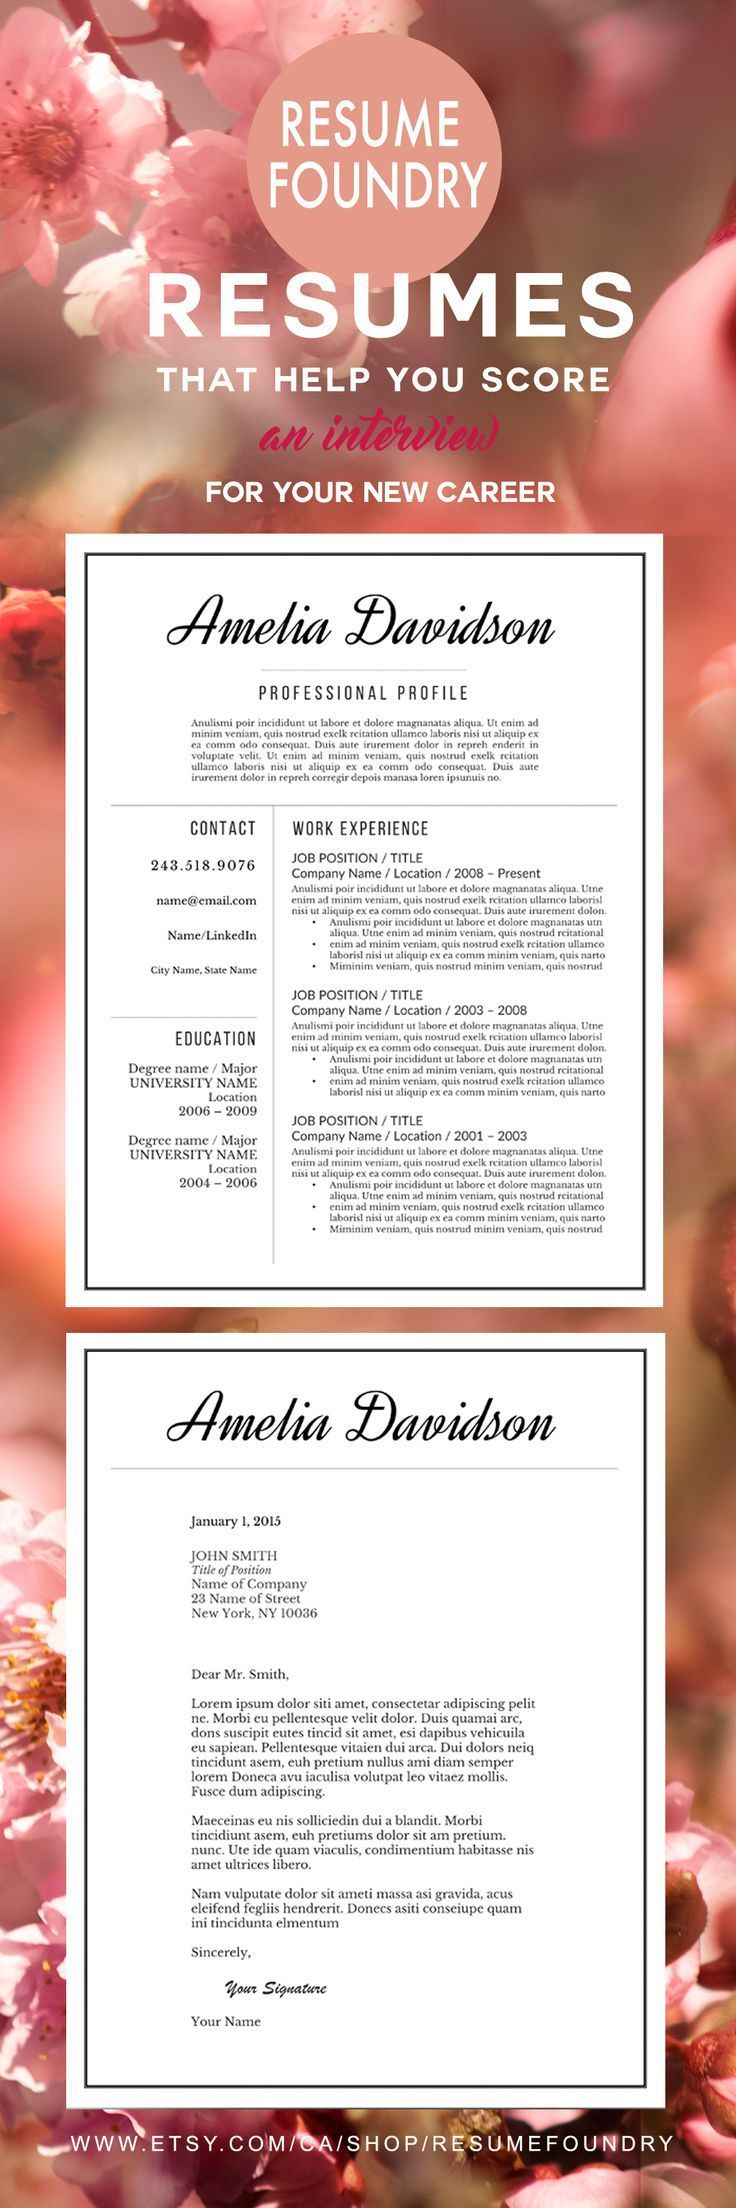 Beautiful elegant resume template from Resume Foundry